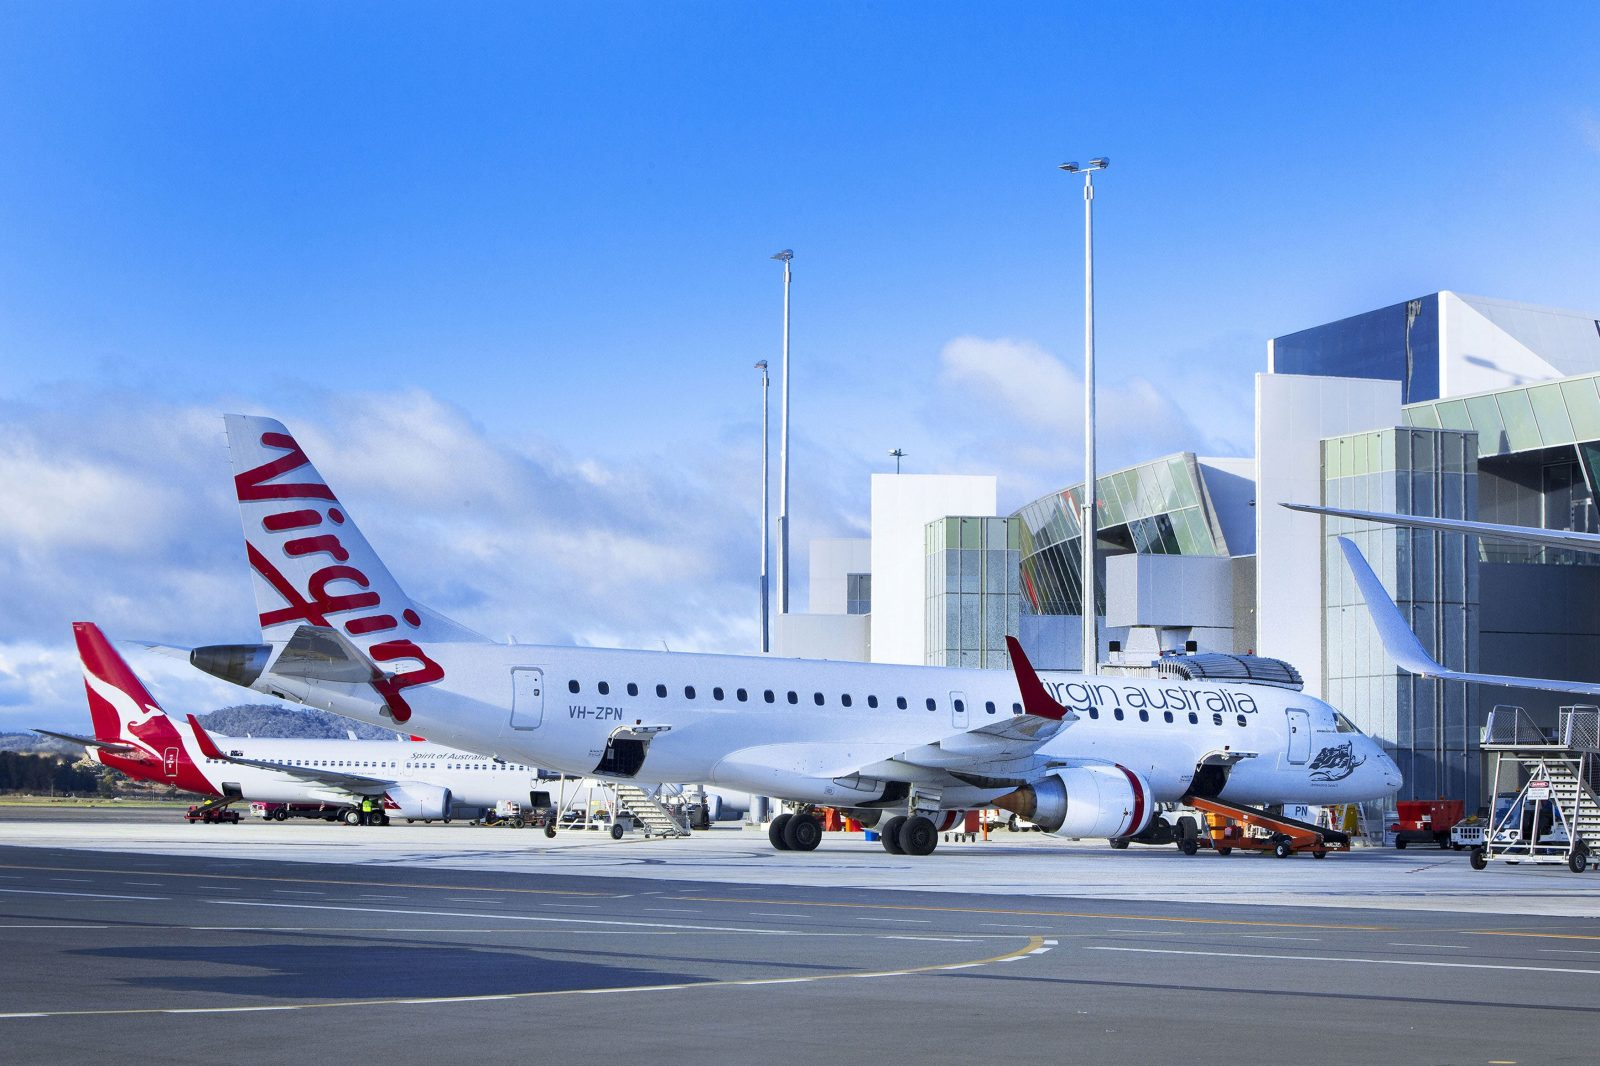 Qantas and Virgin planes on the tarmac